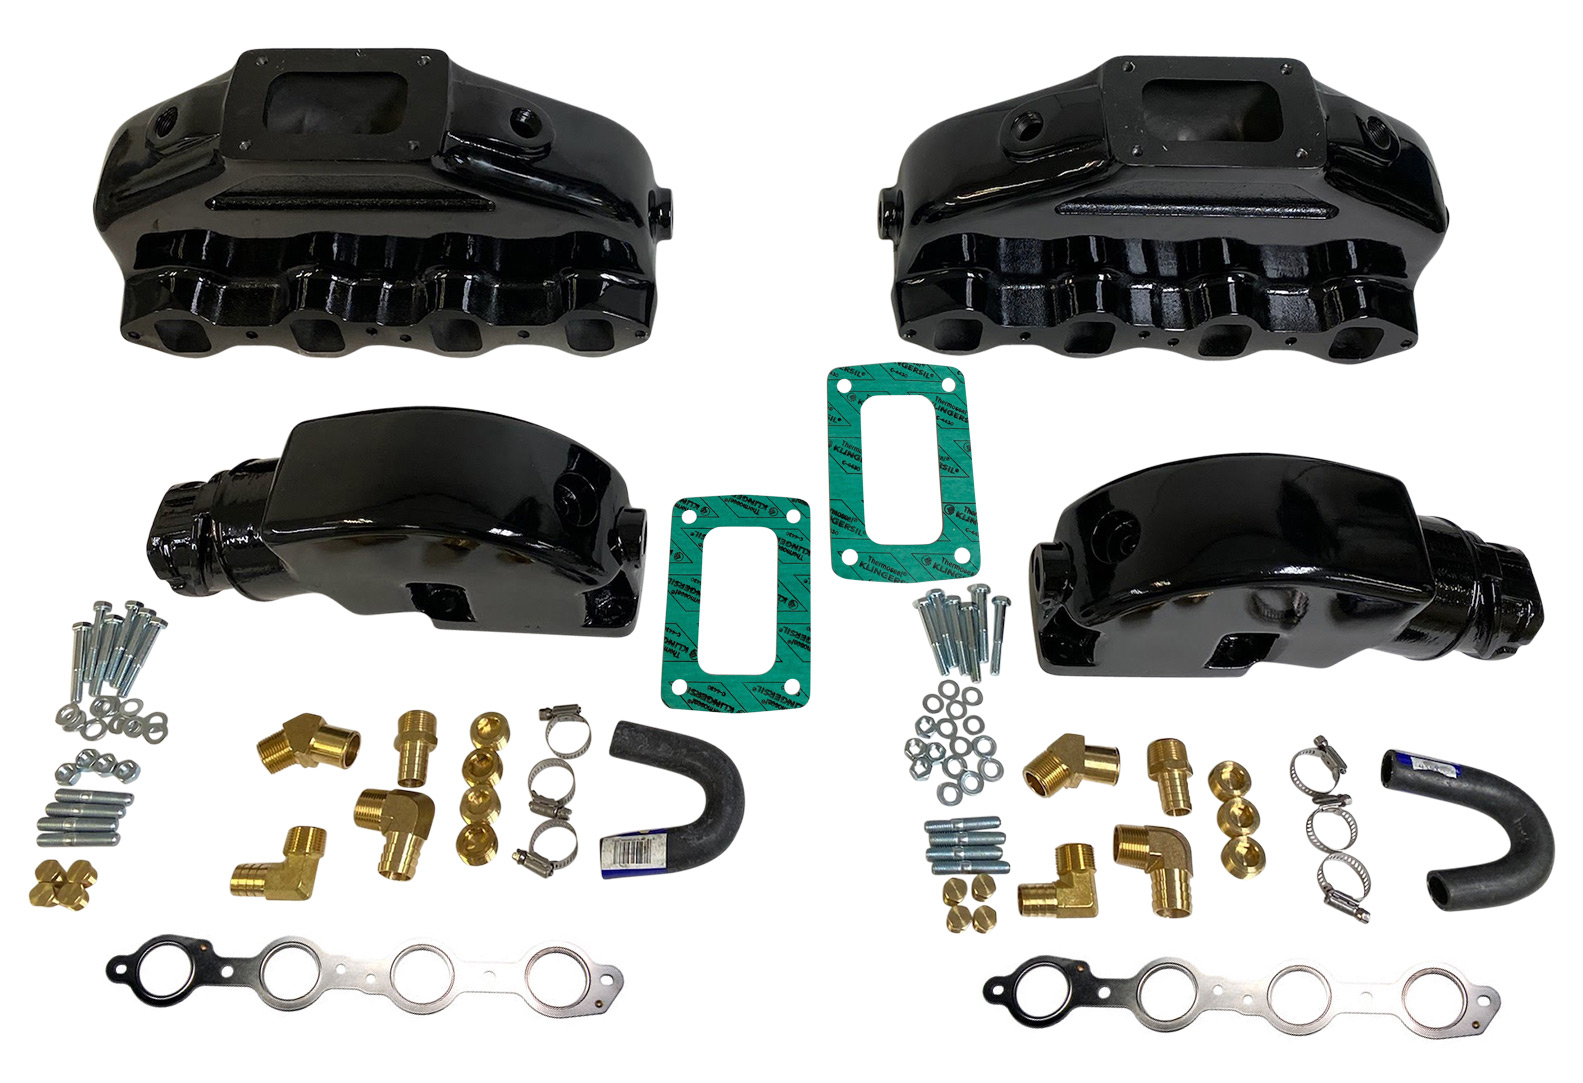 Hardin Marine GM Ls Exhaust Manifold 48 53 60 62 70l Aluminum 4 System: GM Exhaust Systems At Woreks.co